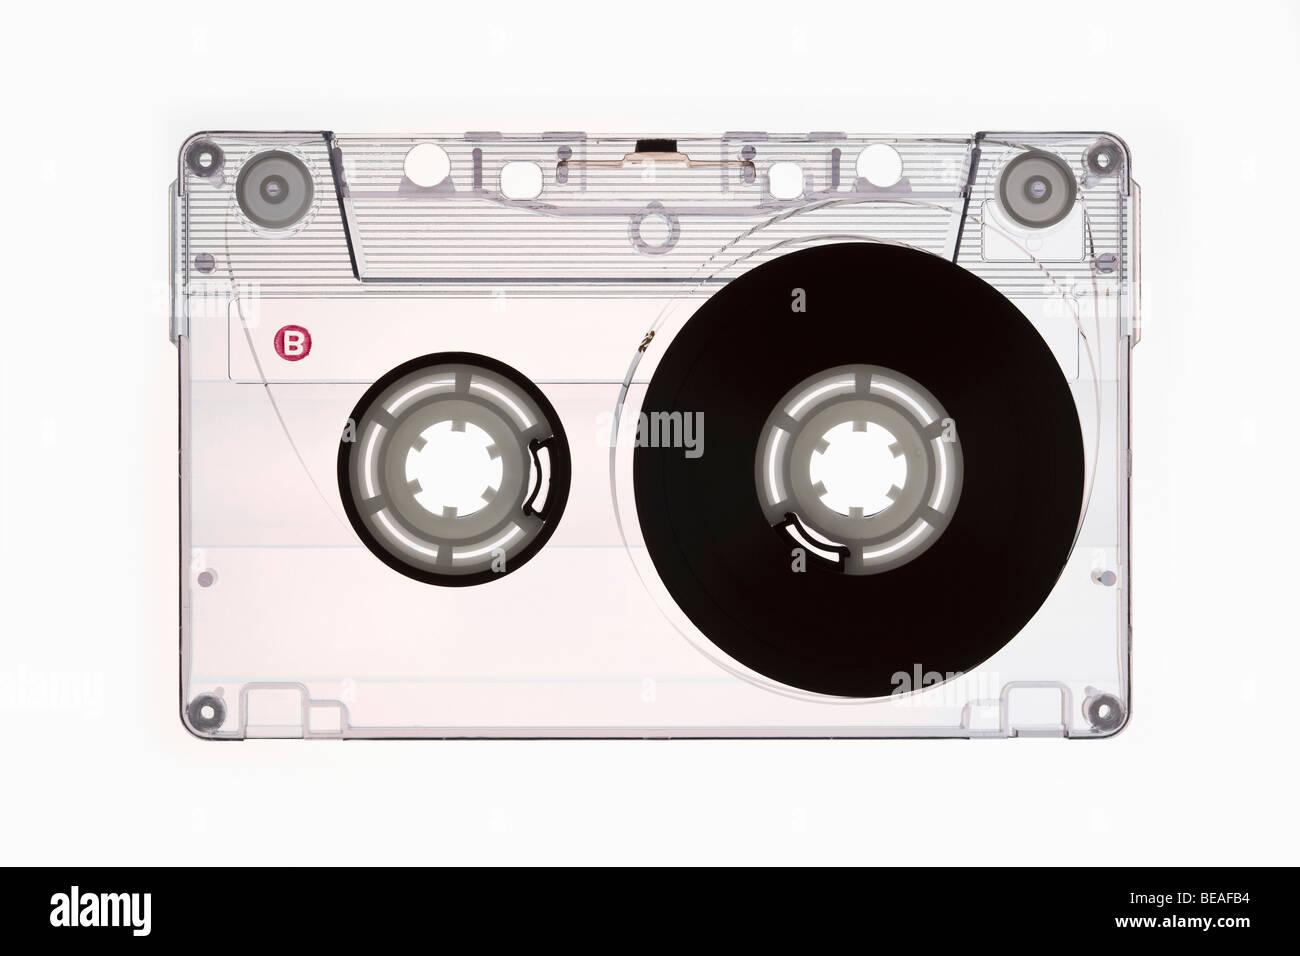 A cassette tape - Stock Image